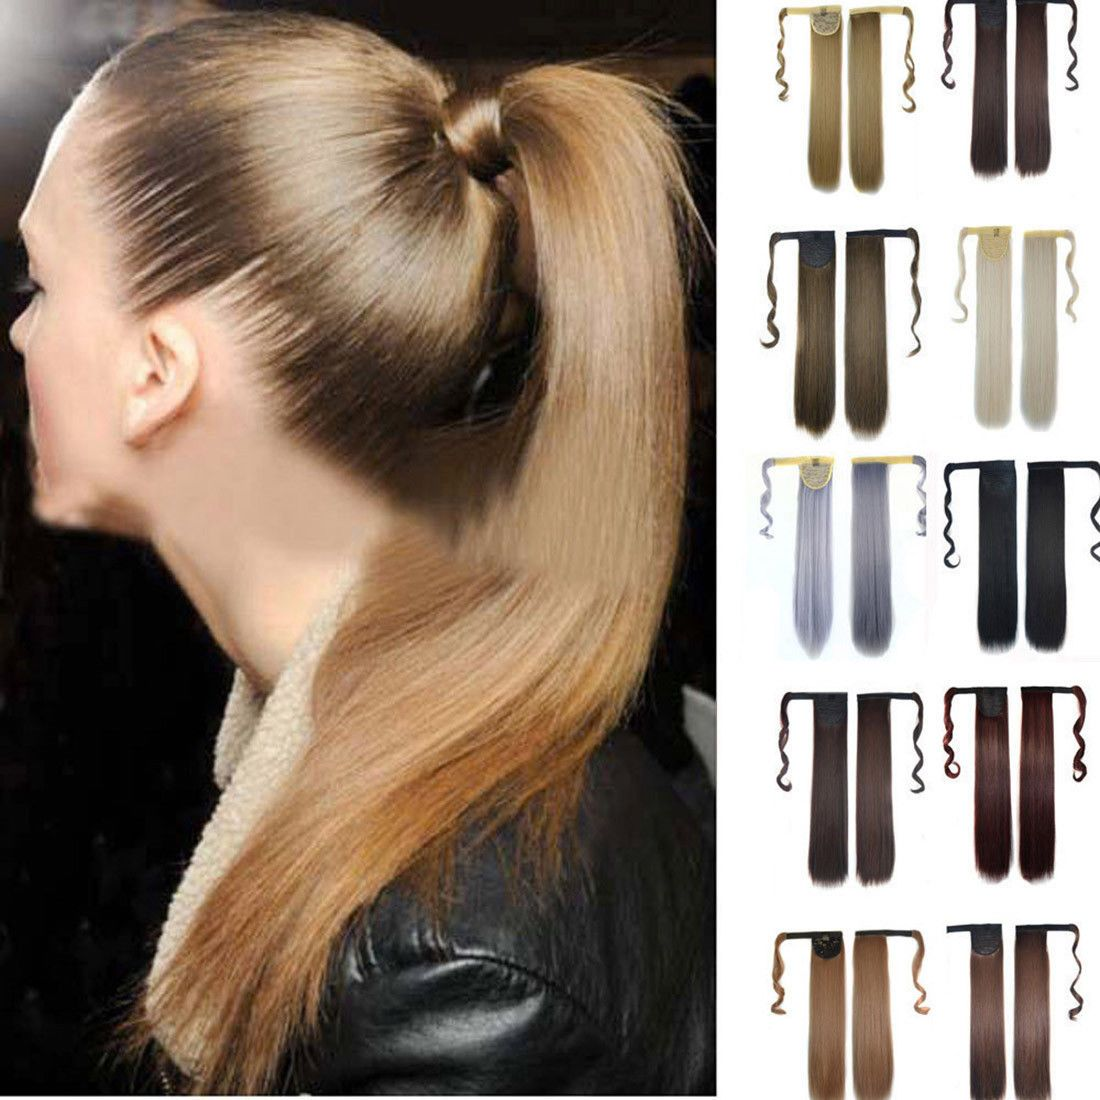 Hair Extensions Ebay Health Beauty Straight Ponytail Human